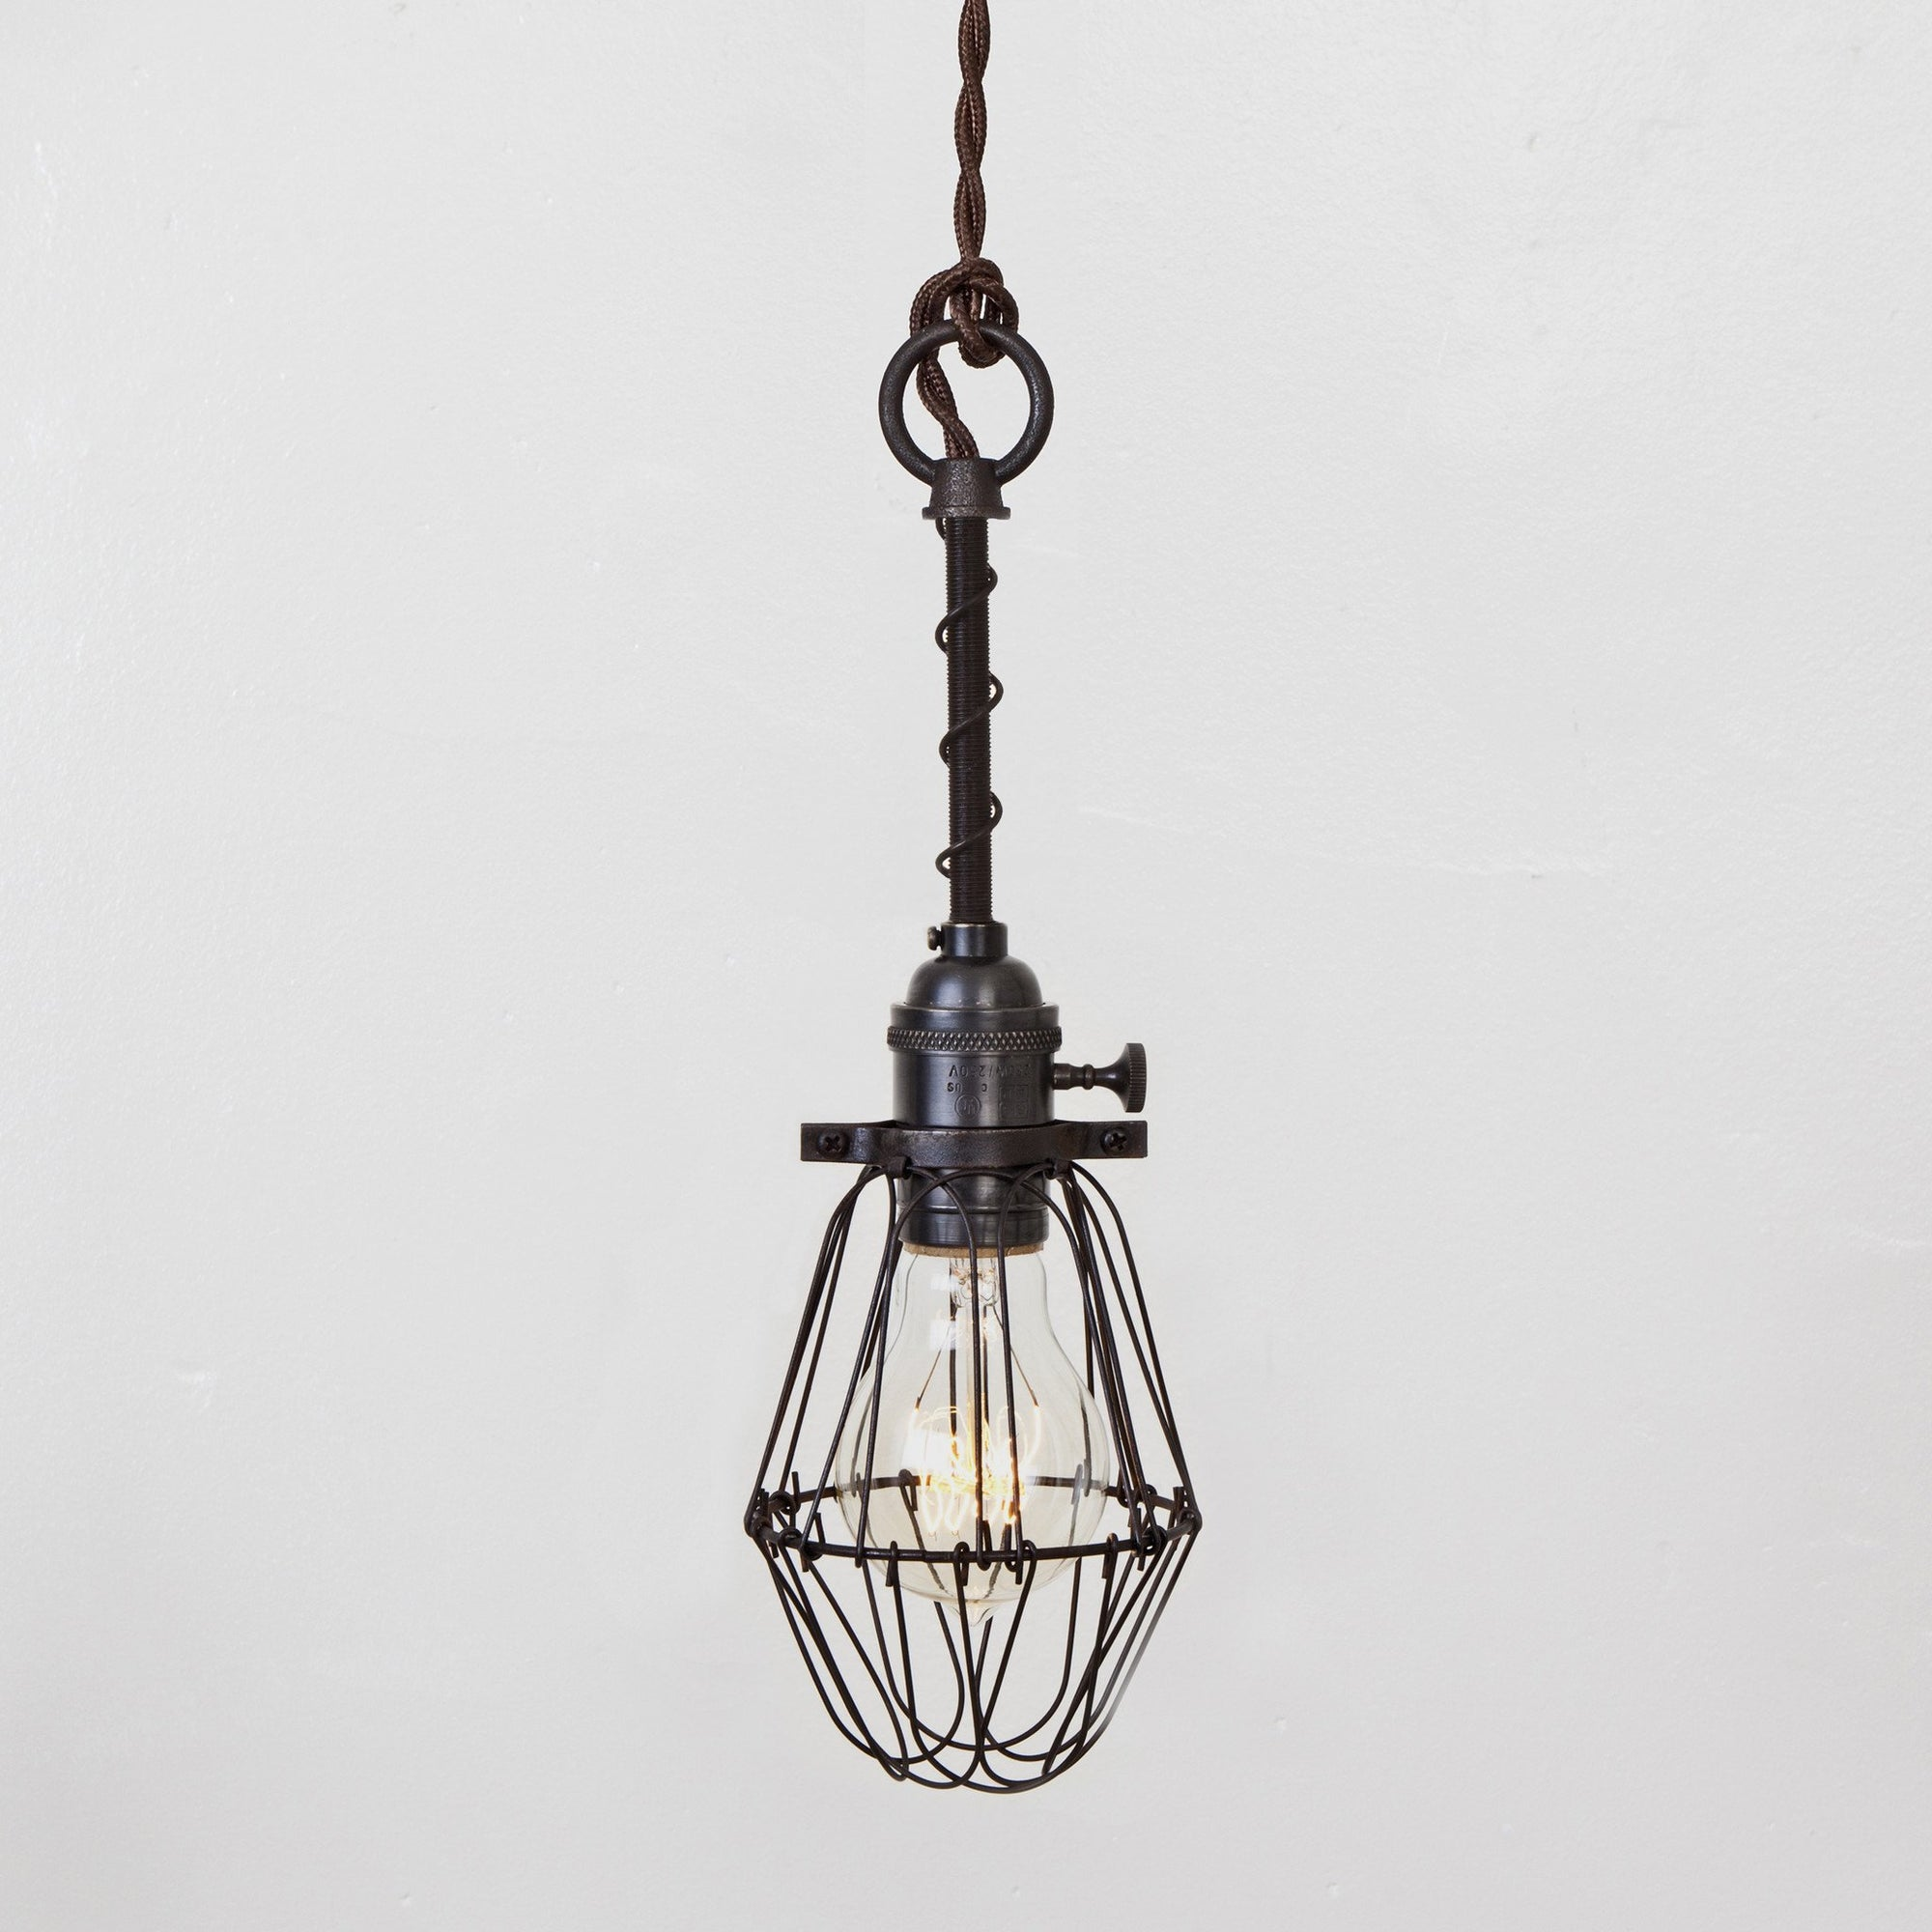 Basic Wire Bulb Cage Pendant Light - Brass Switch Socket